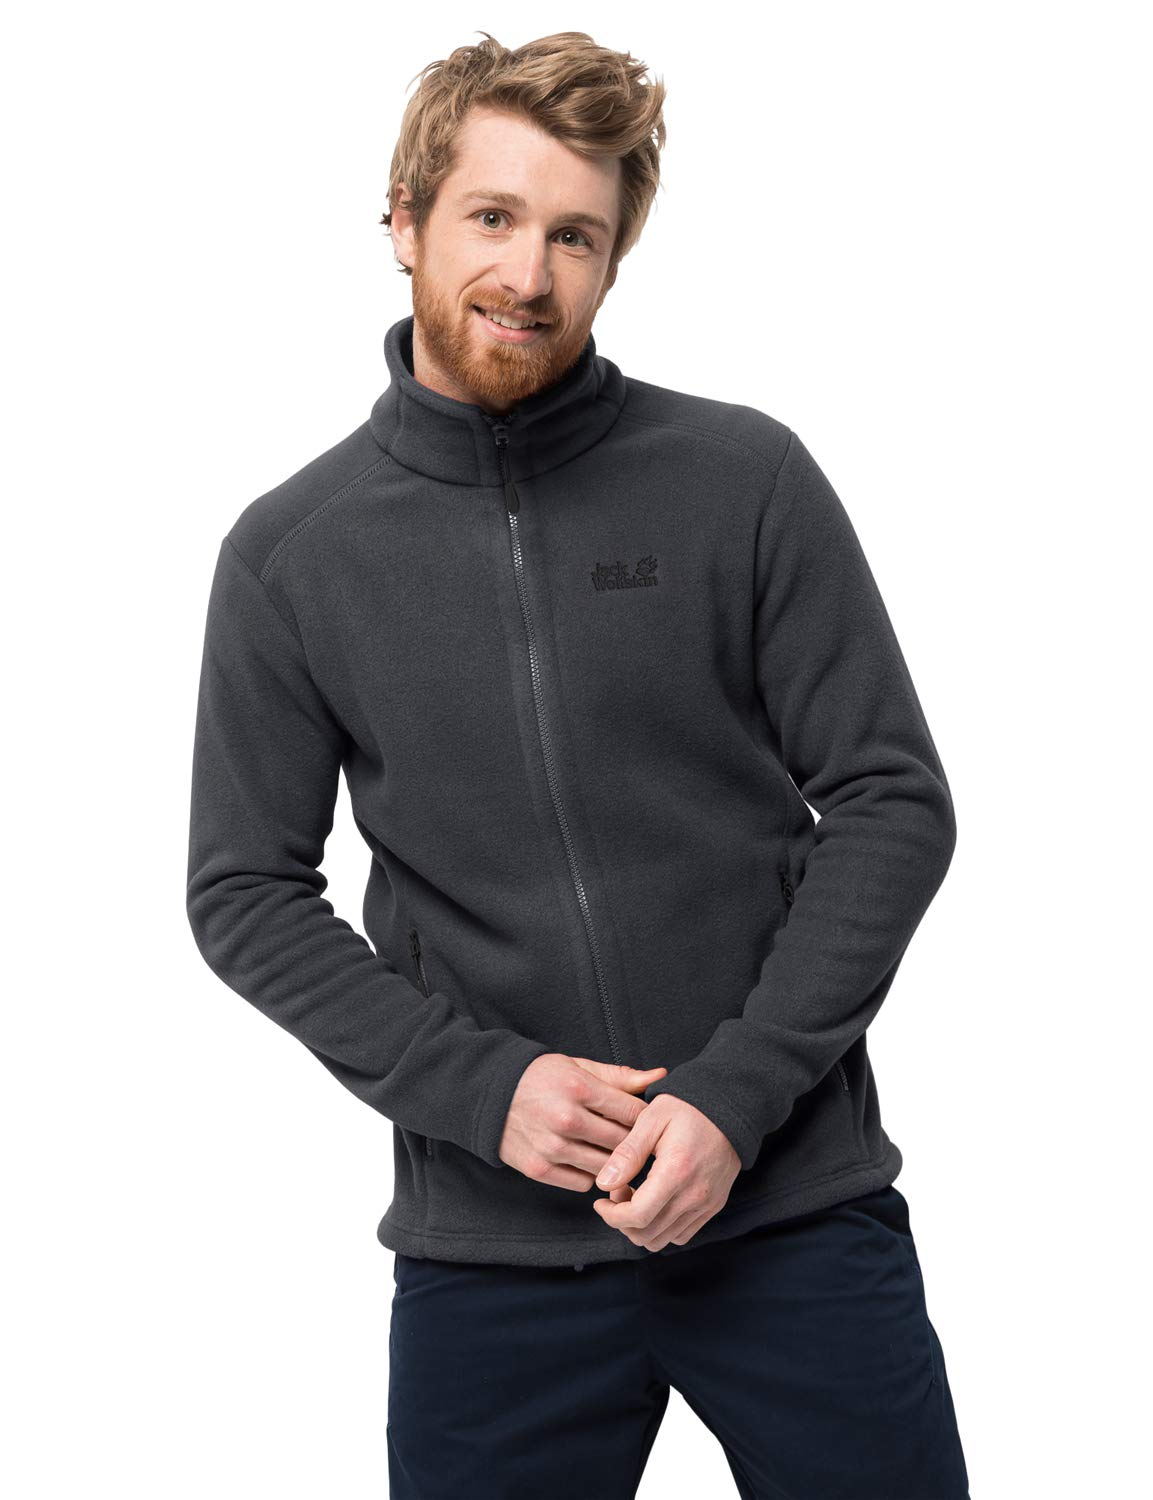 Jack Wolfskin Hombre Midnight Moon Forro polar reciclado jkt Regular-System-Zip, Ebony, X-Large